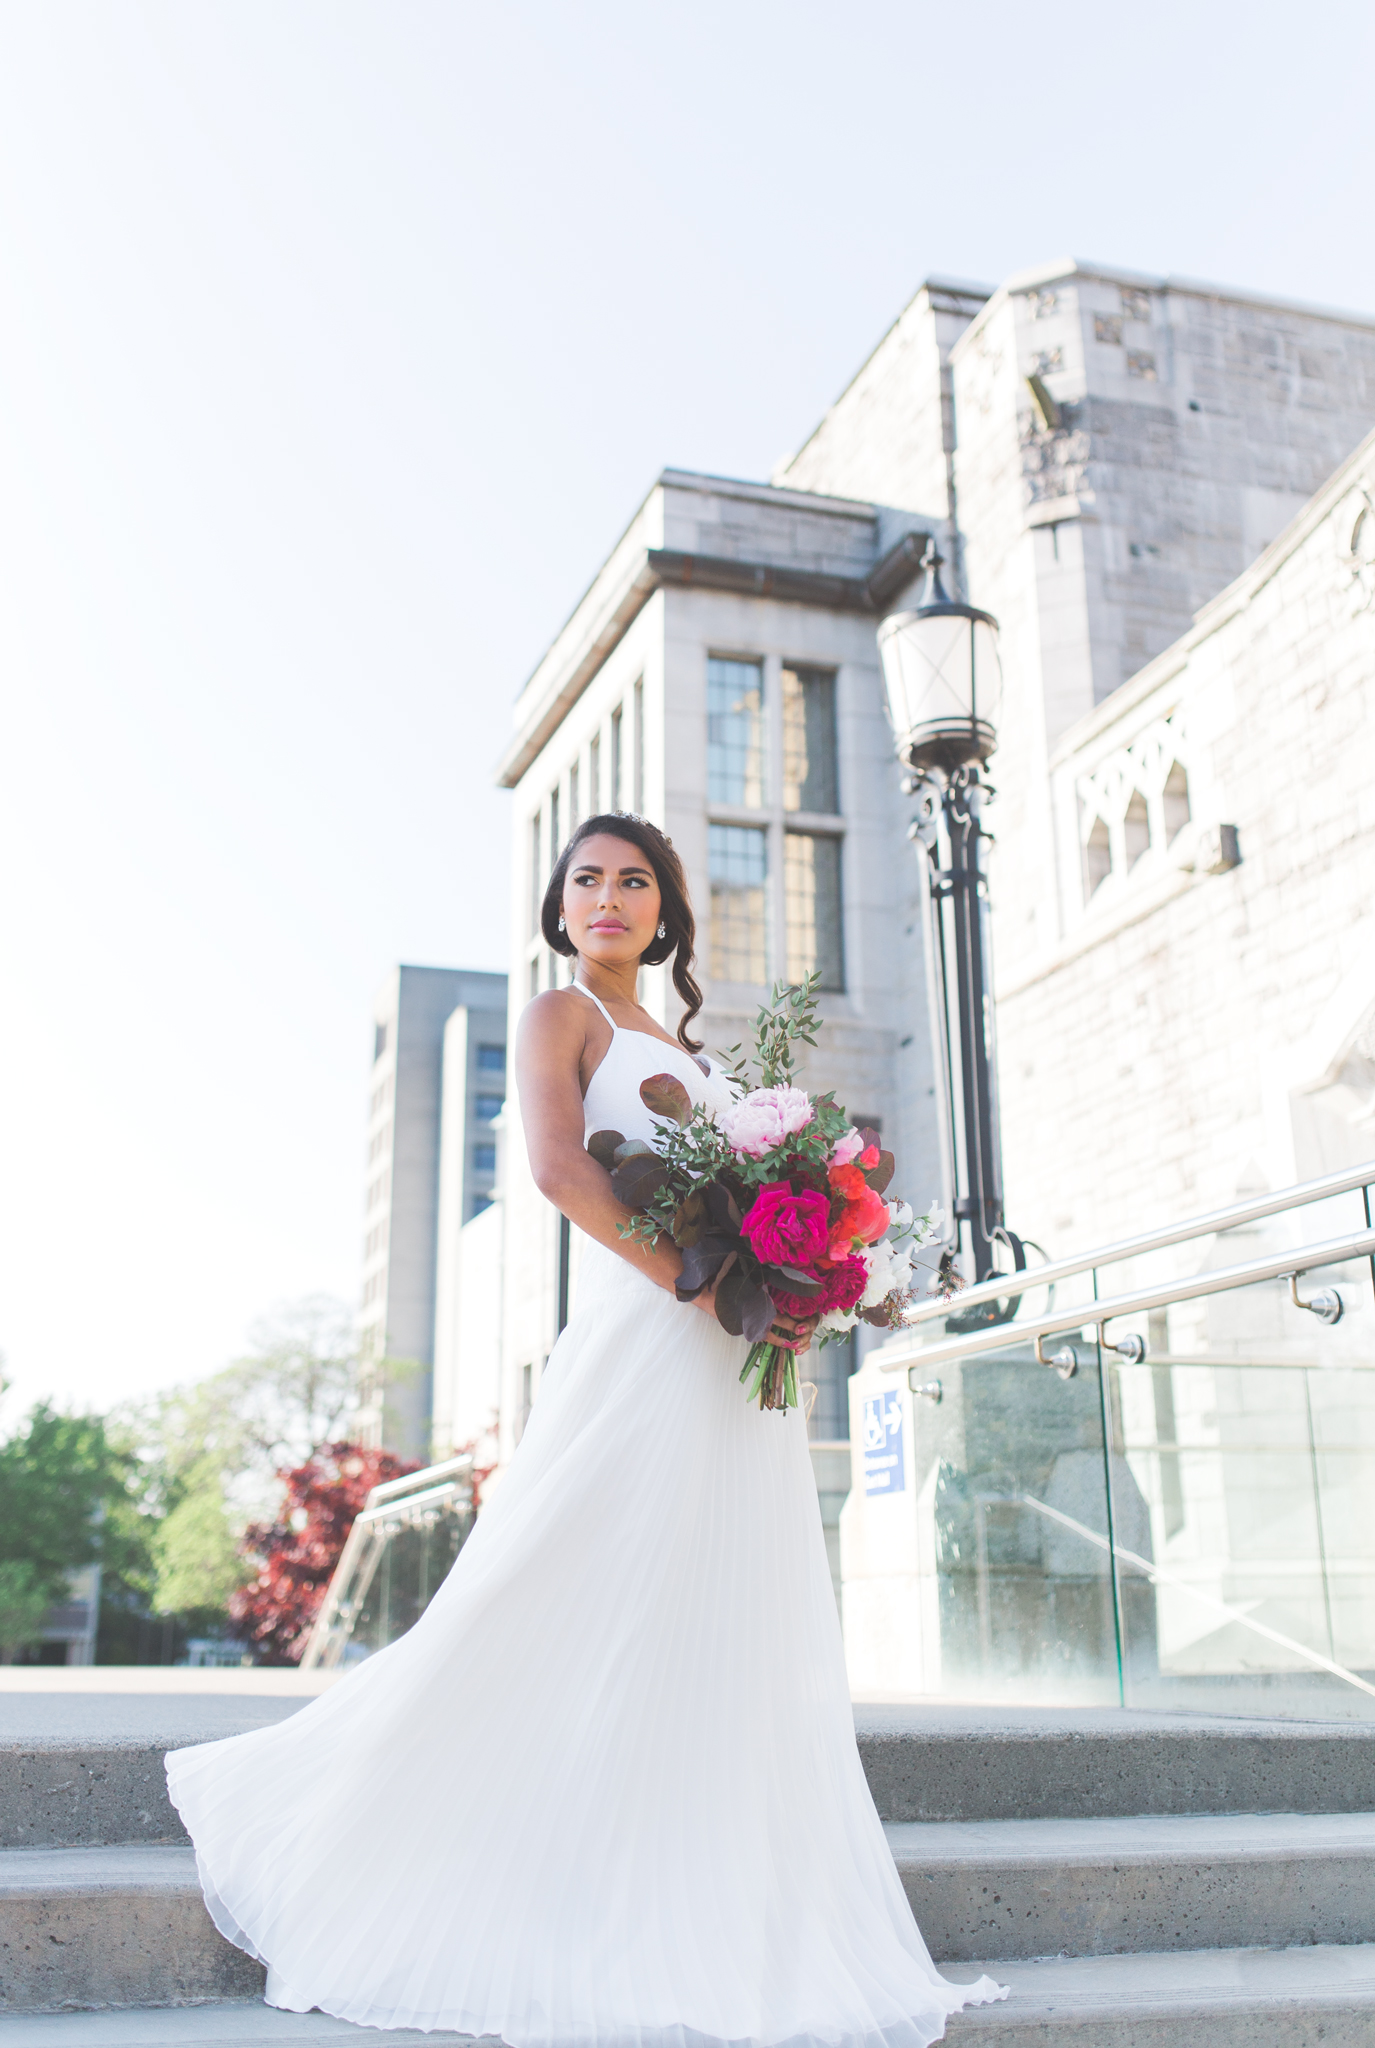 IMG_3715-VANCOUVER-BRIDAL-EDITORIAL-JENNIFER-PICARD-PHOTOGRAPHY.jpg